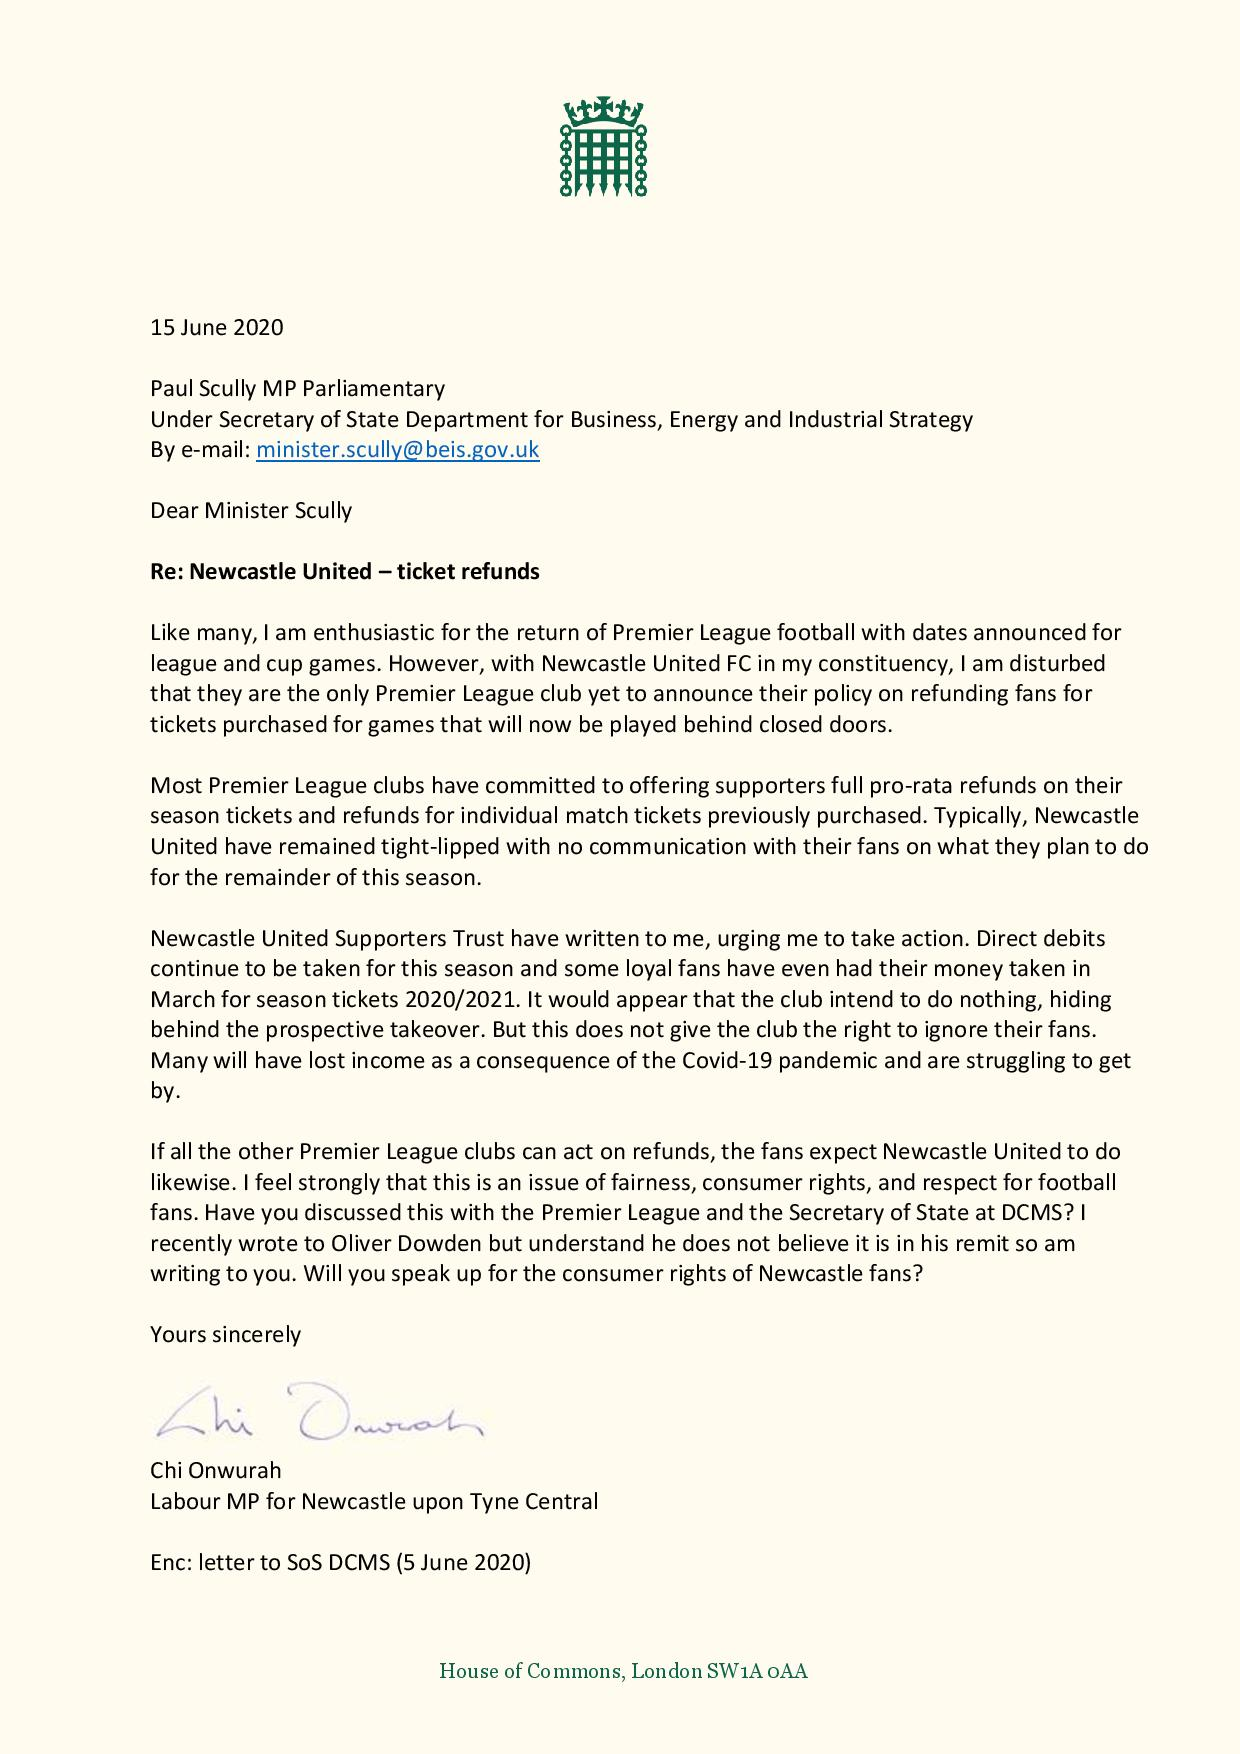 Chi writes to Under Secretary of State for BEIS urging action over NUFC ticket refunds